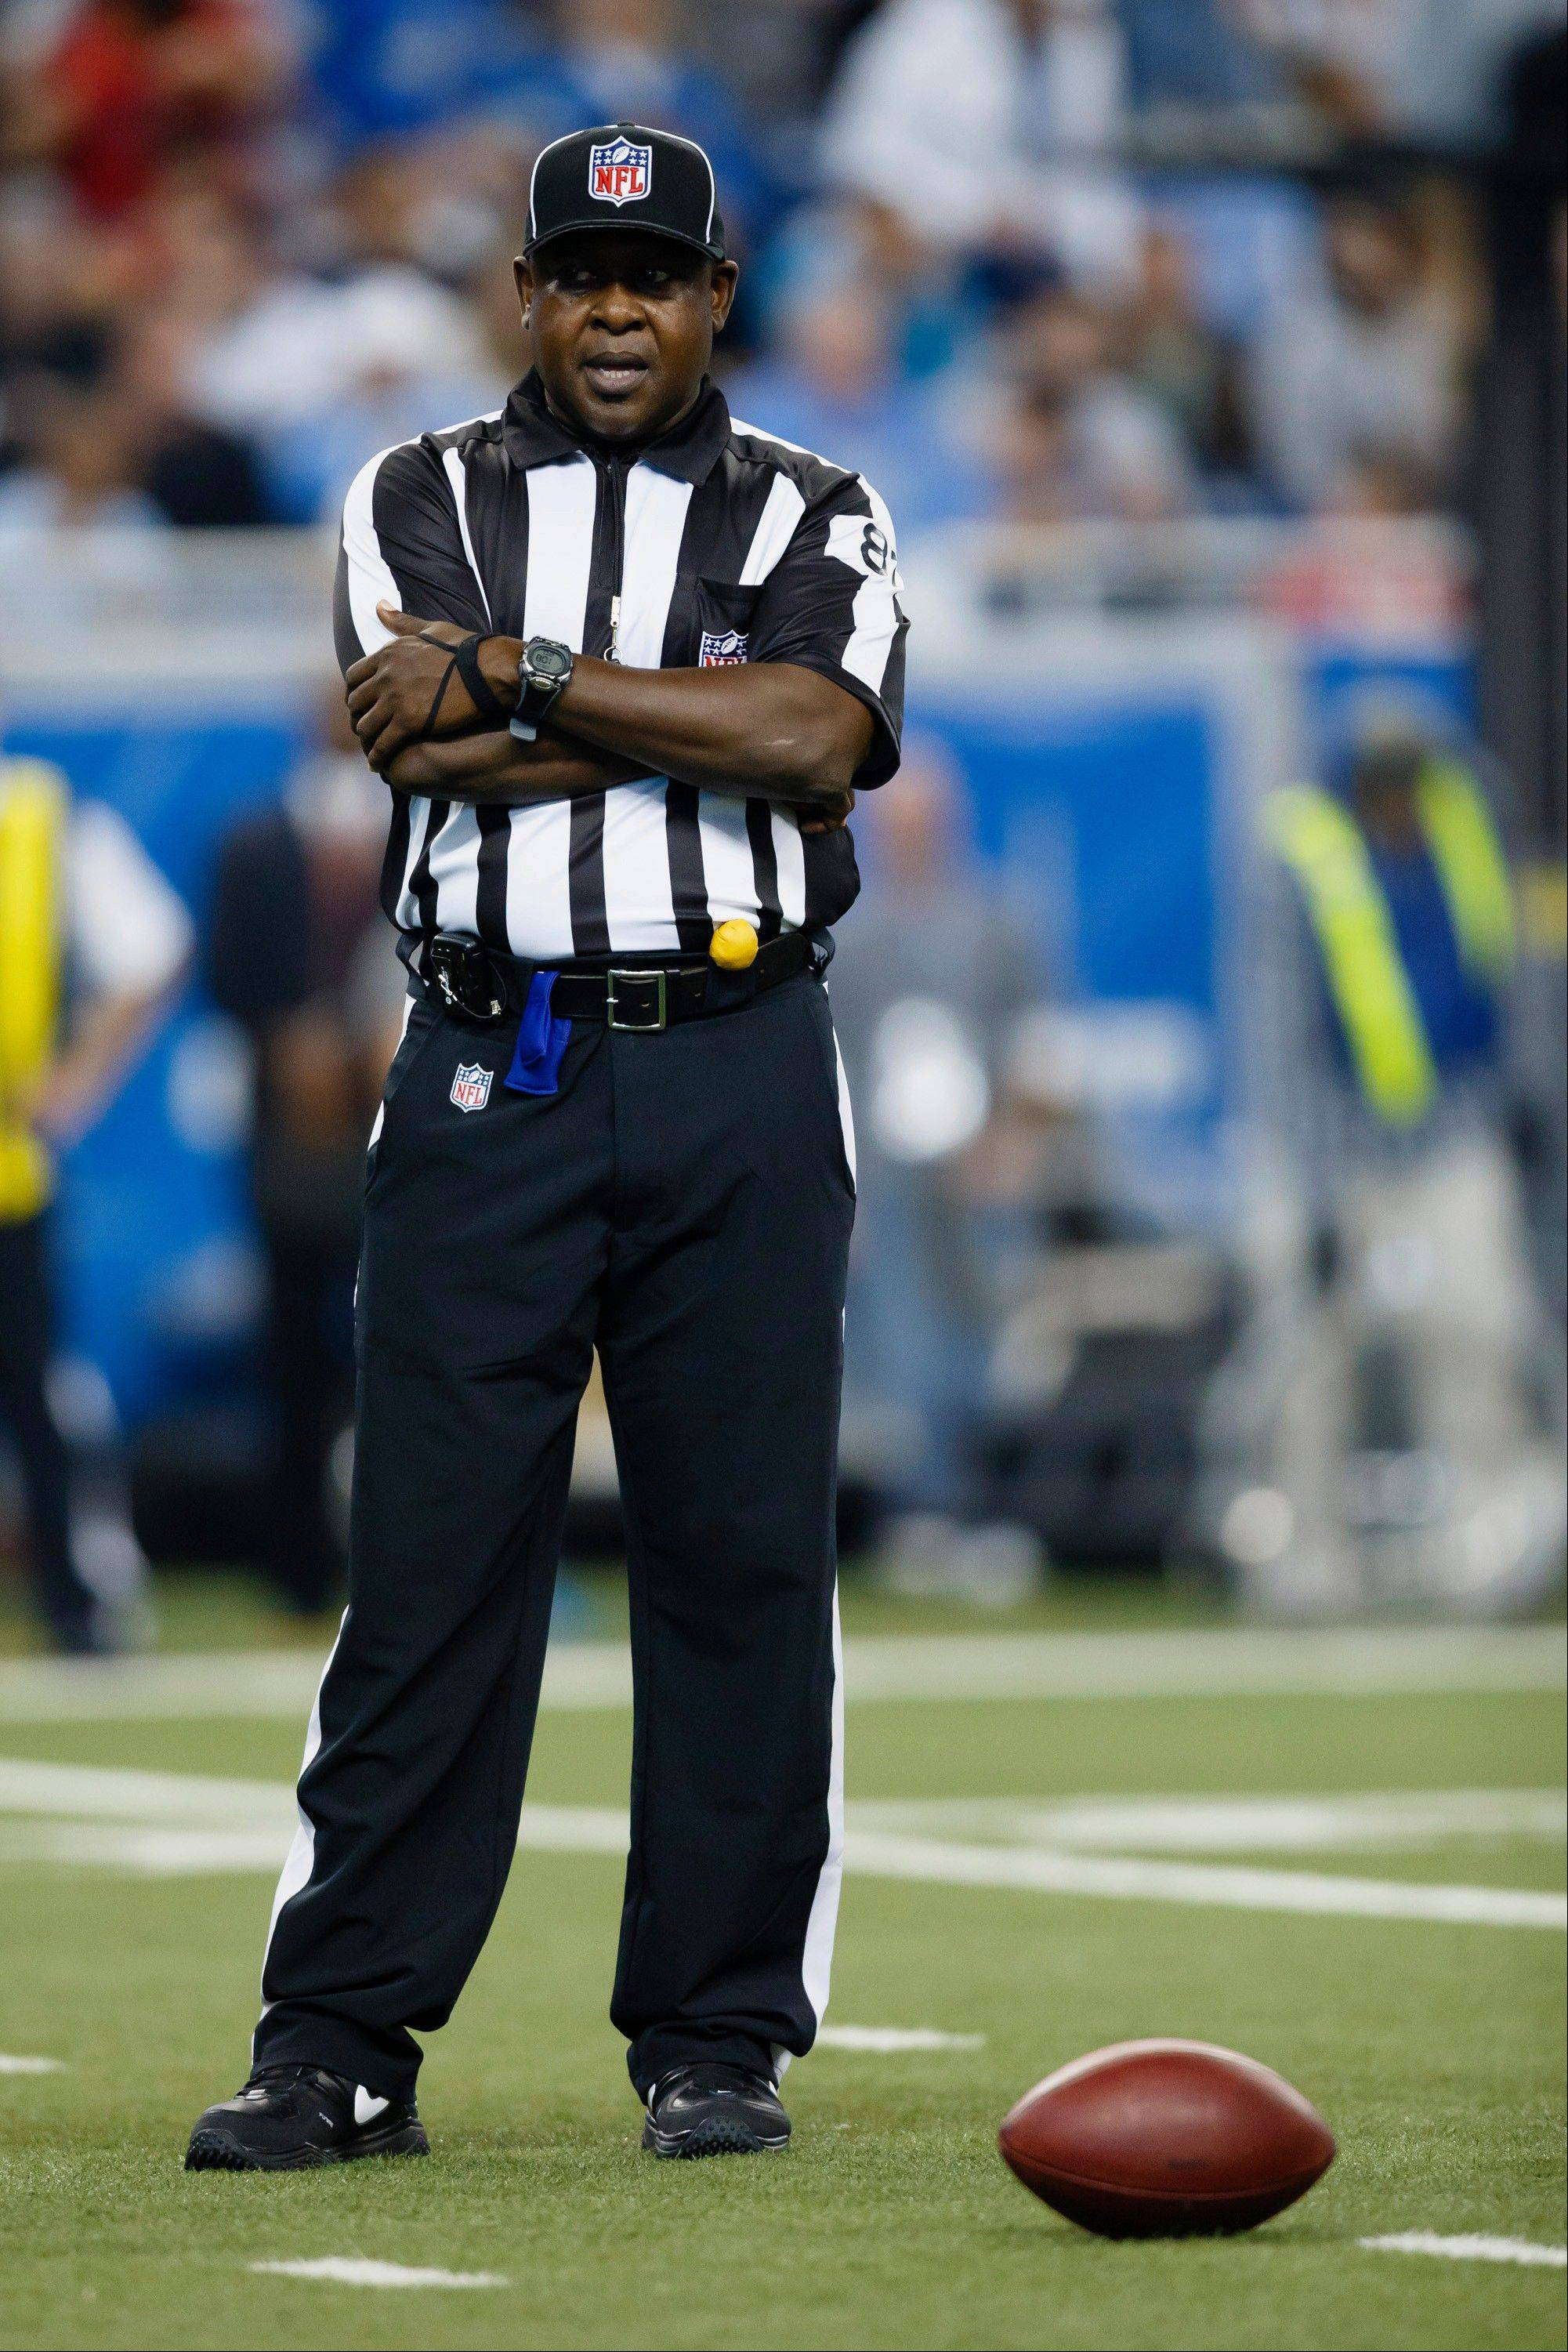 The NFL on Friday suspended umpire Roy Ellison for one game without pay for making �a profane and derogatory statement� to a Washington player last Sunday.